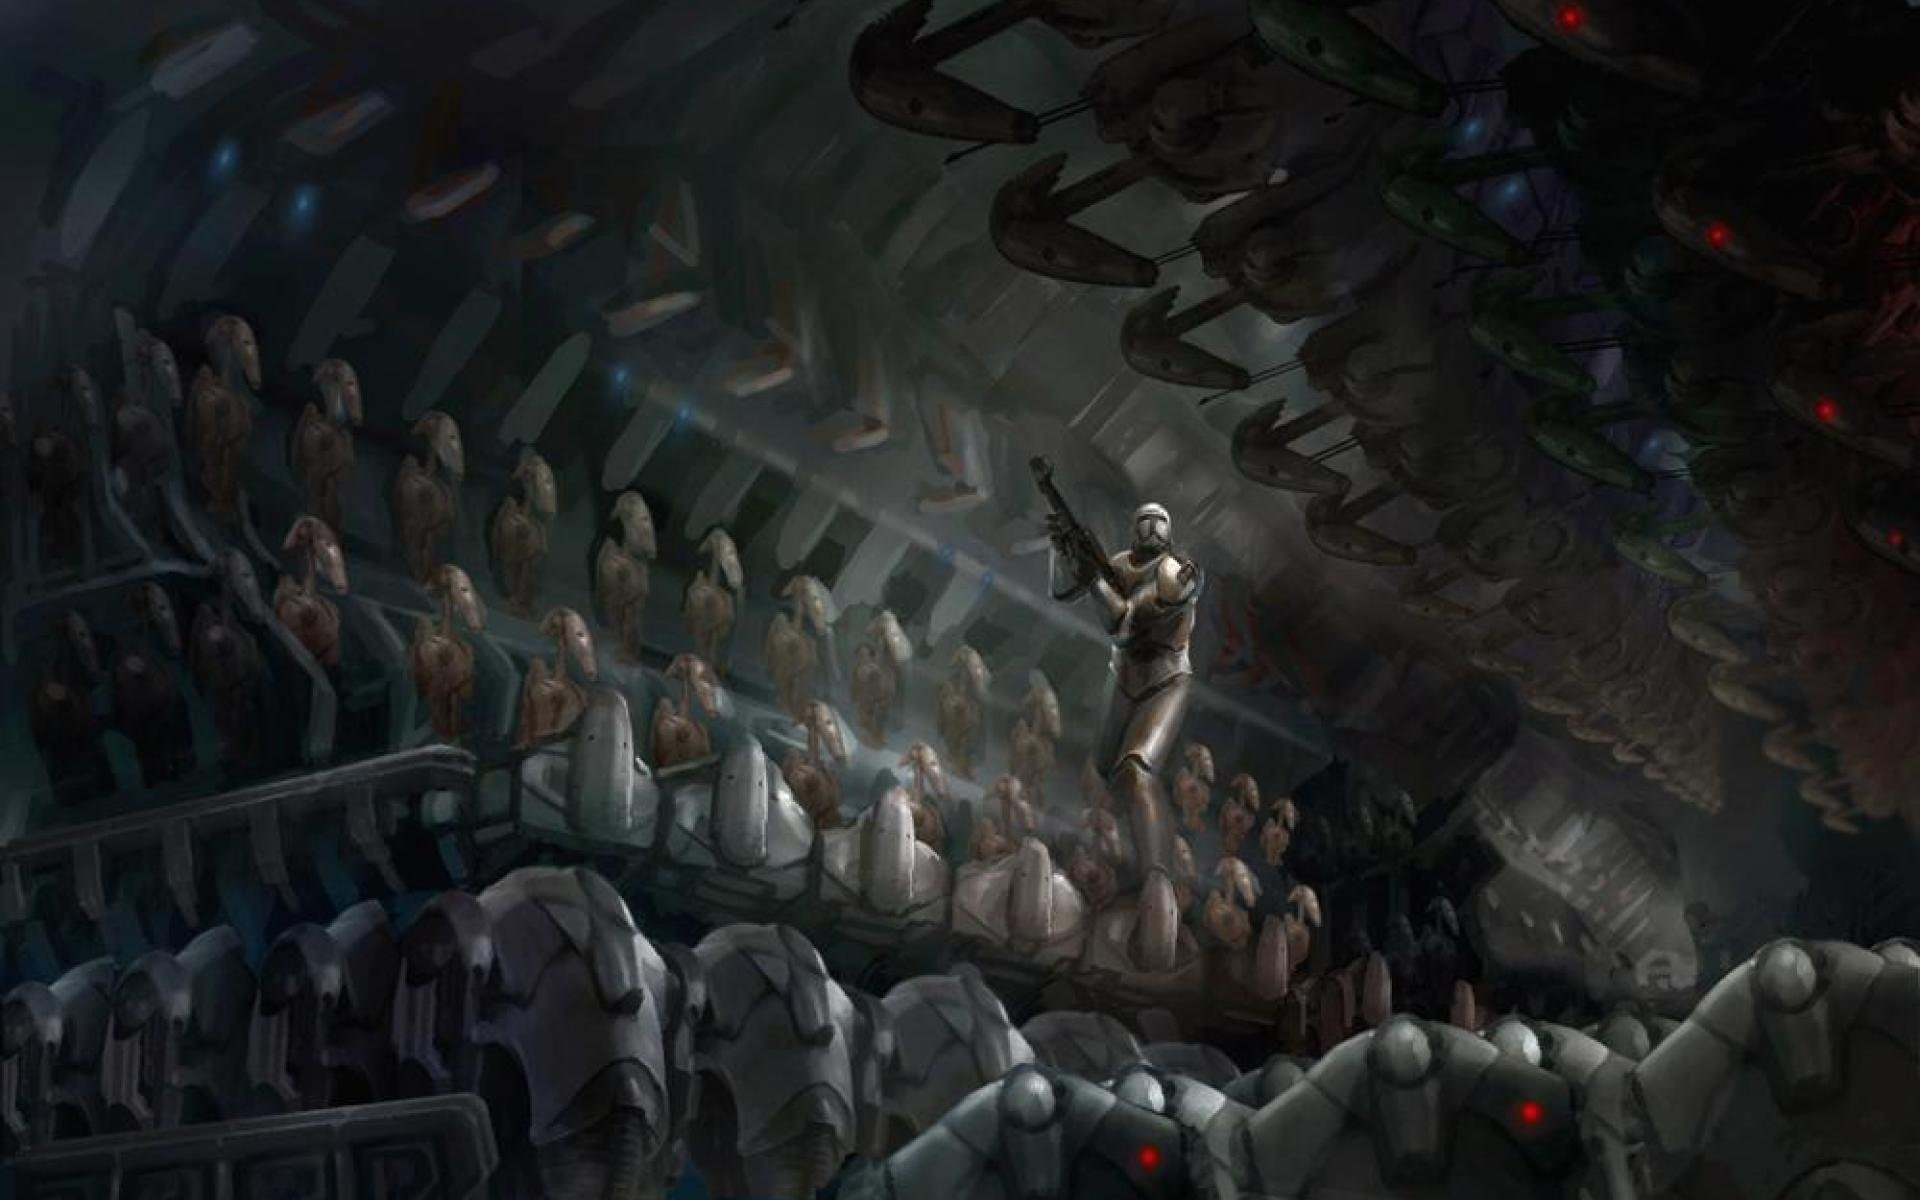 Star Wars The Clone Wars Wallpaper 1920x1080 Posted By Ethan Johnson